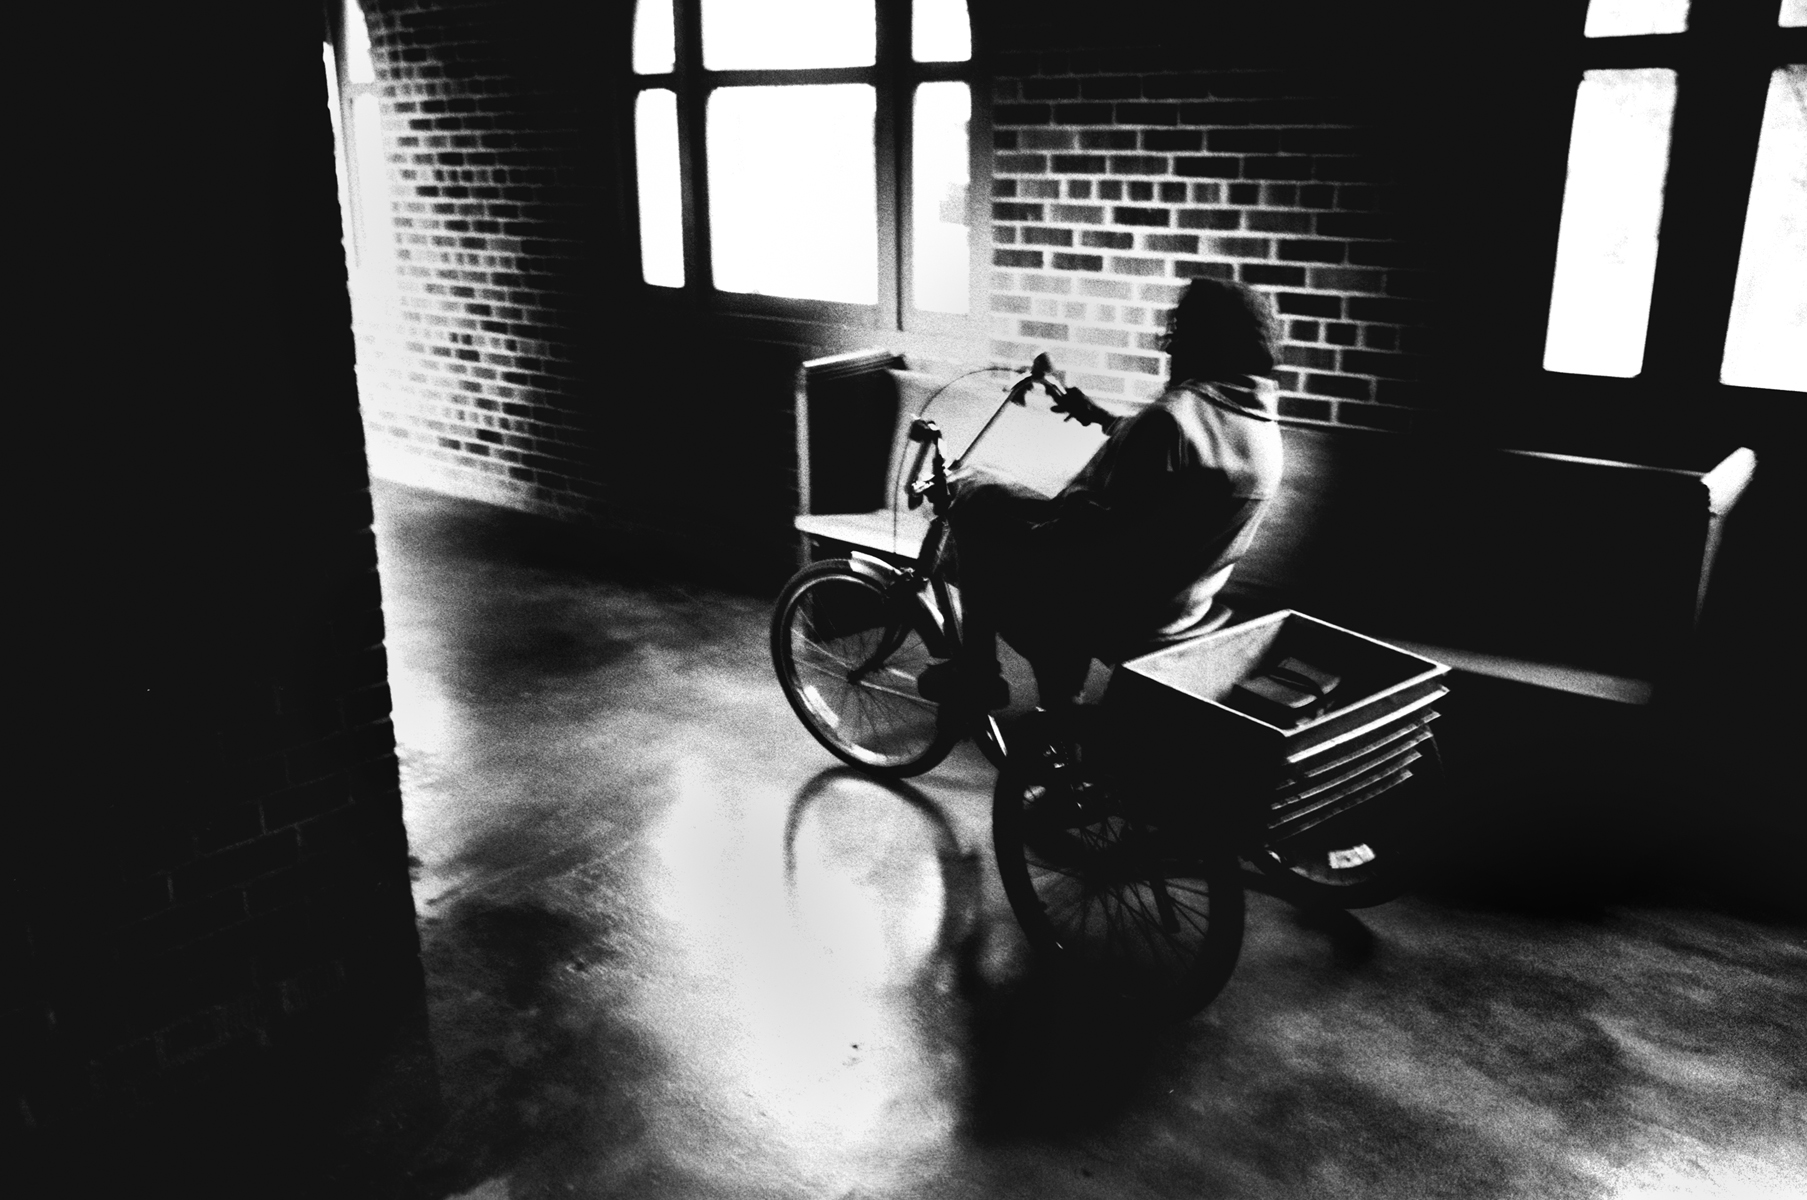 Betty Martin rides her bike through the long breezeways and corridors at Carville.